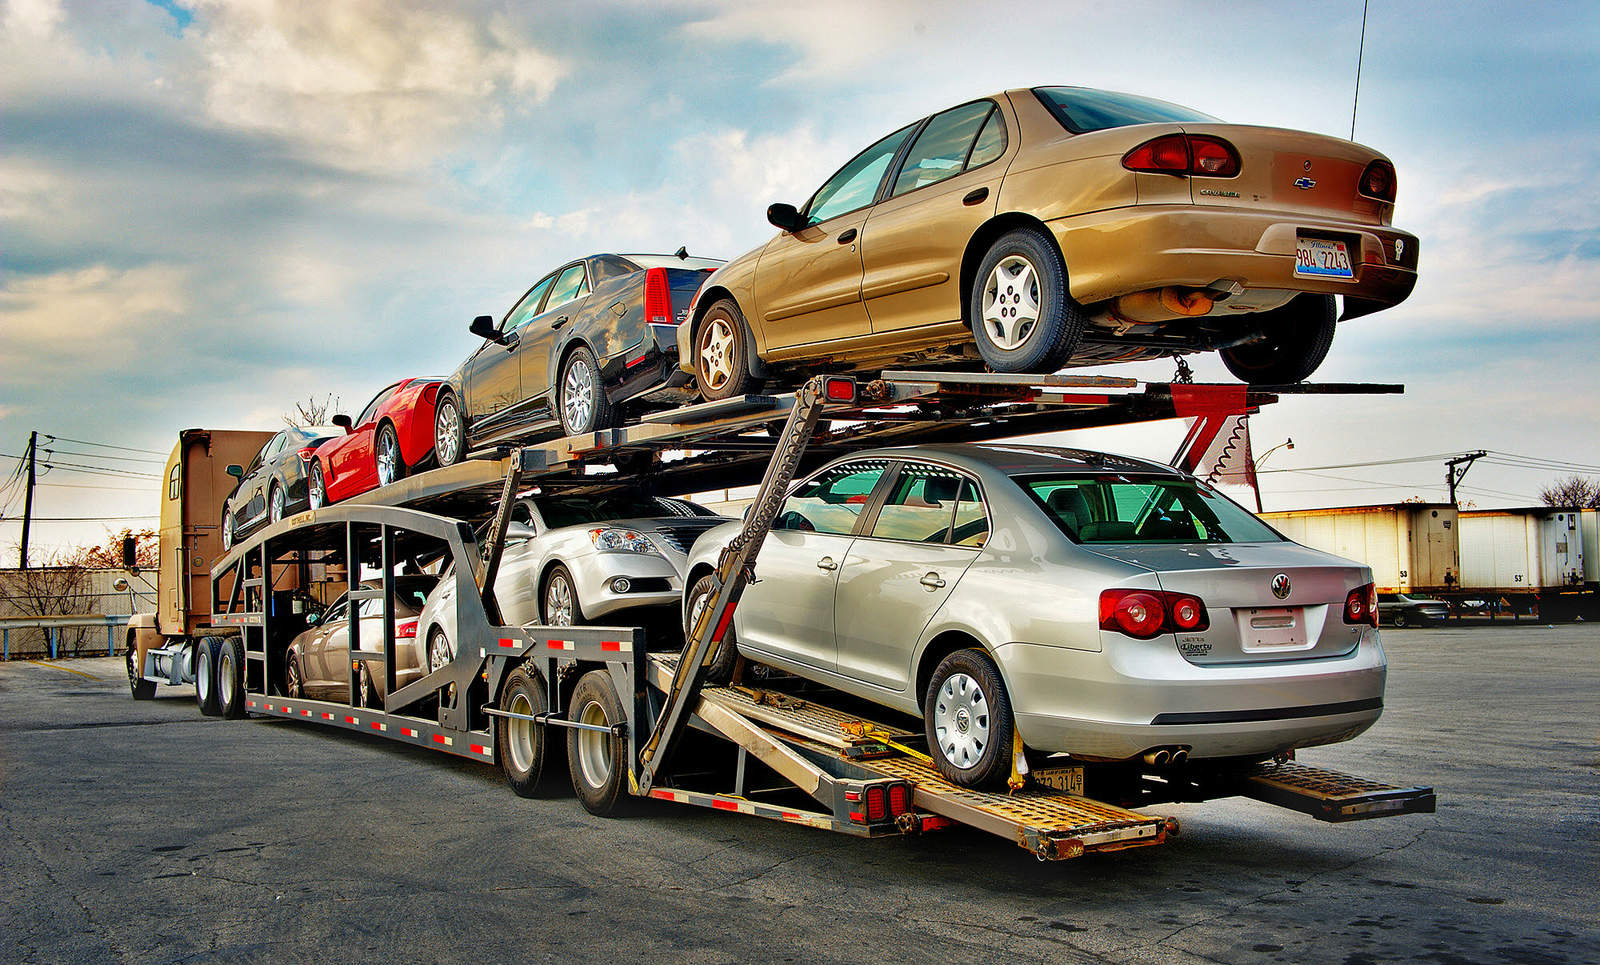 Car Shipping Rates >> Car Shipping Rates No Car No Fun Muscle Cars And Power